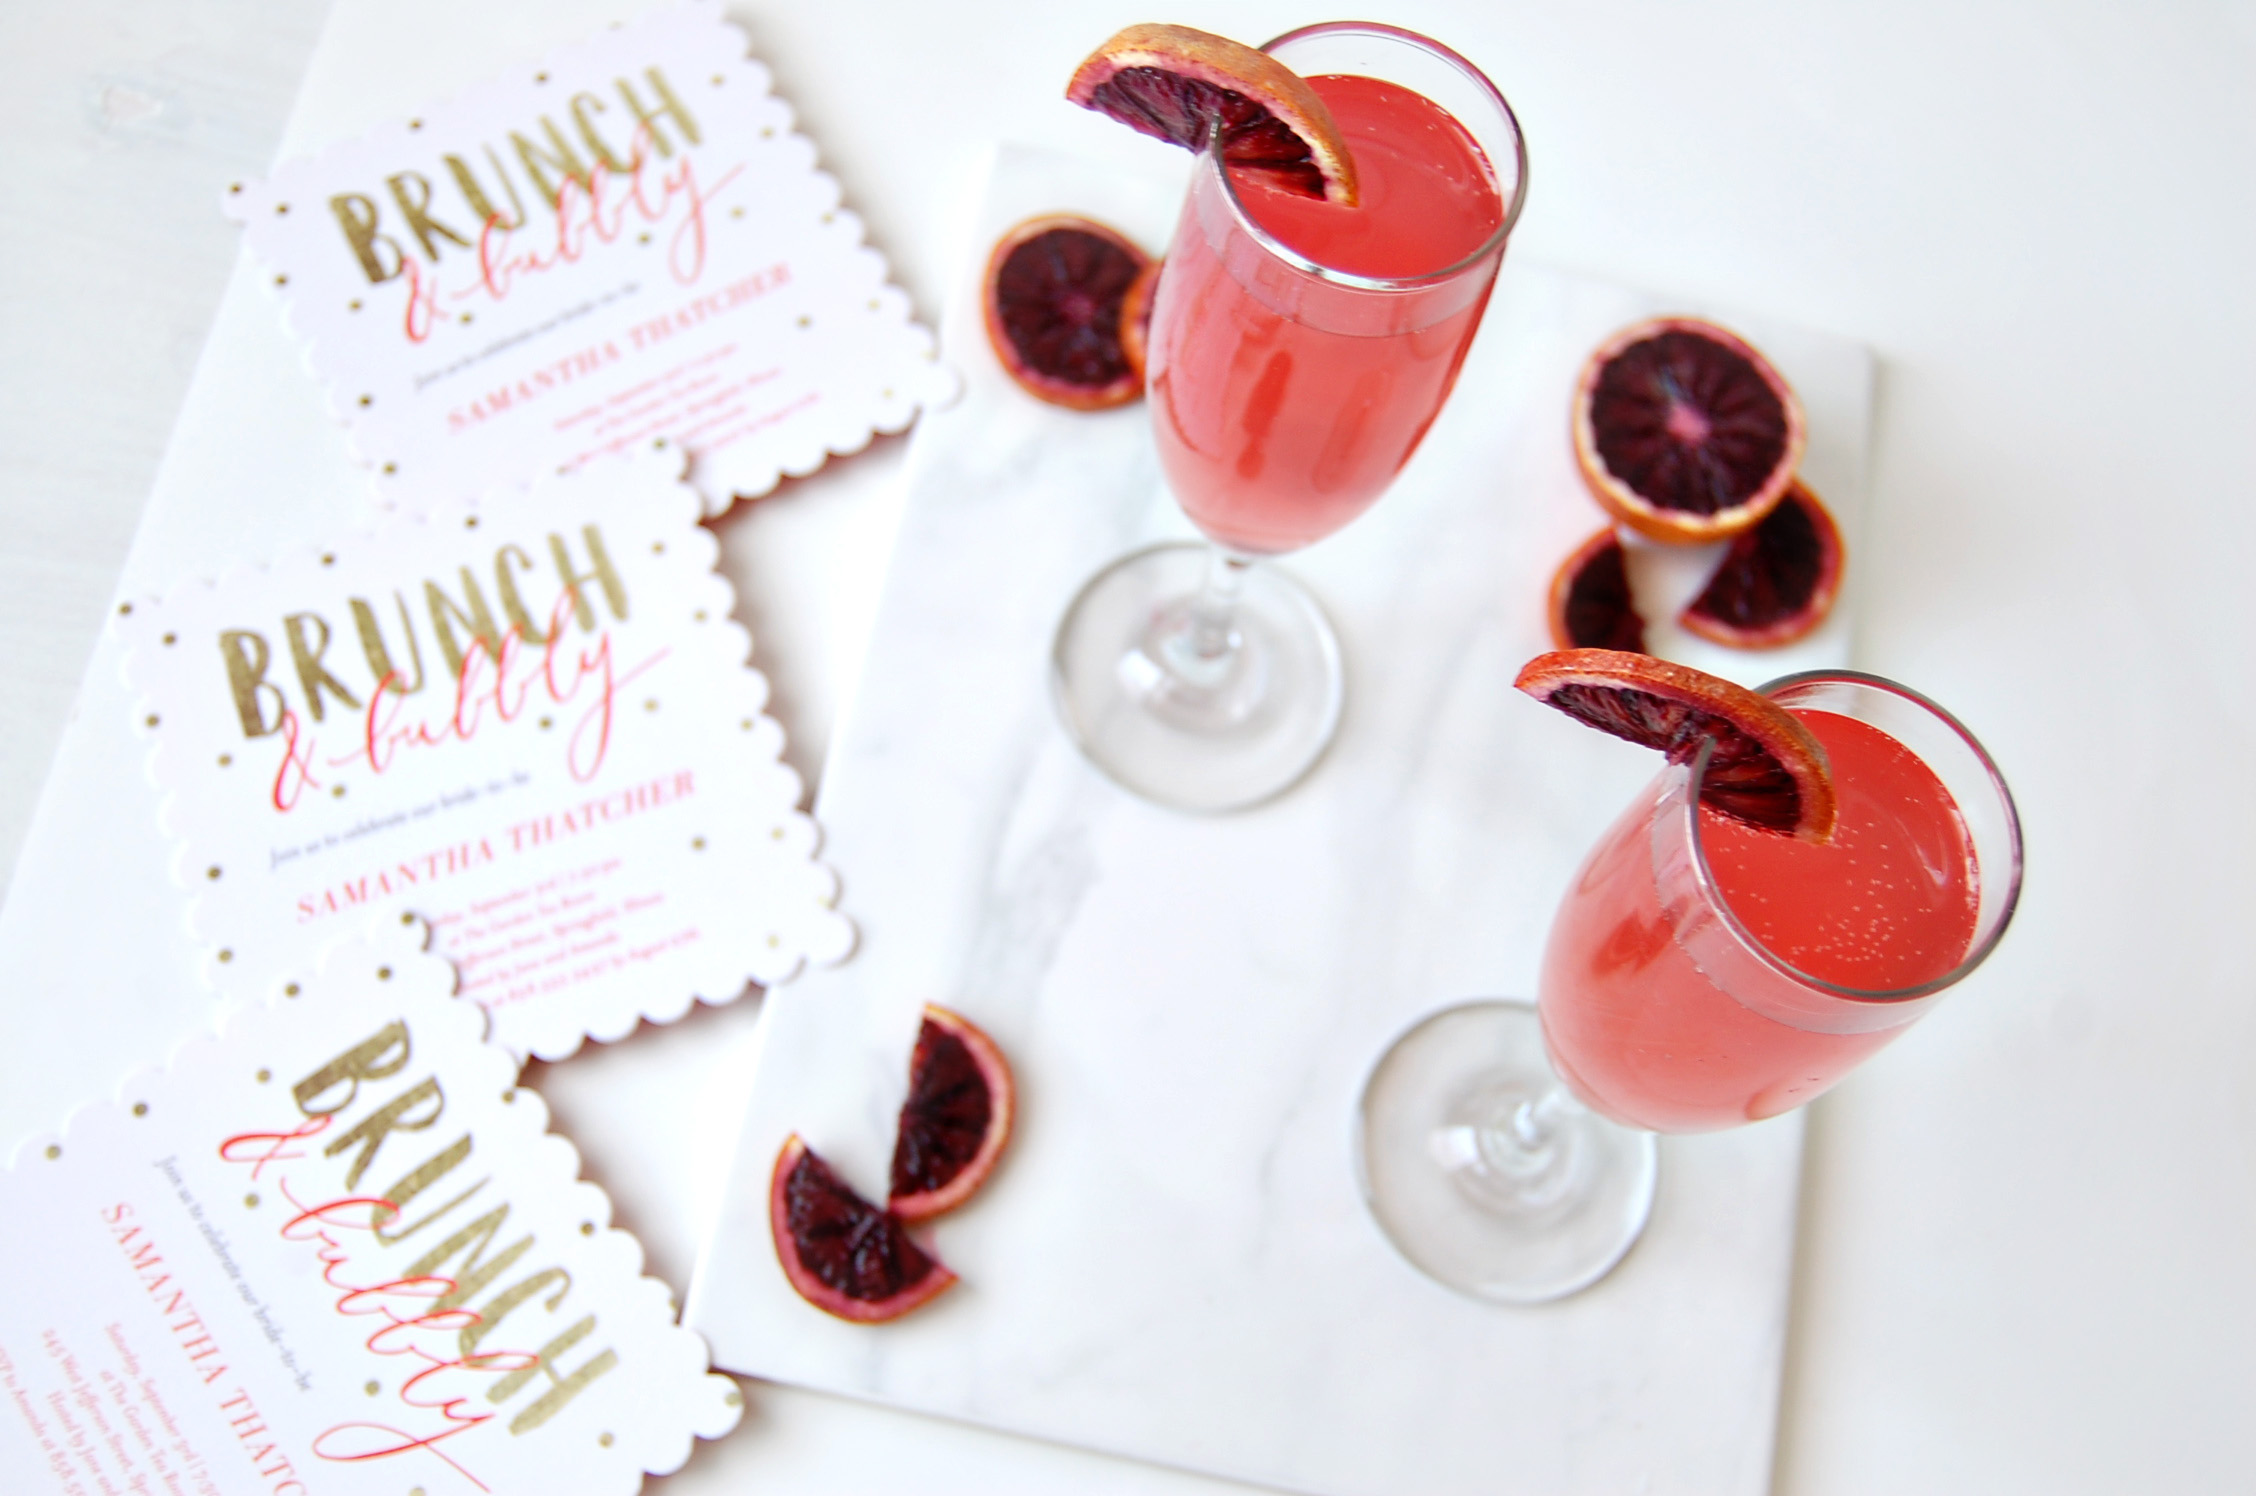 Bubbly Brunch Mimosa